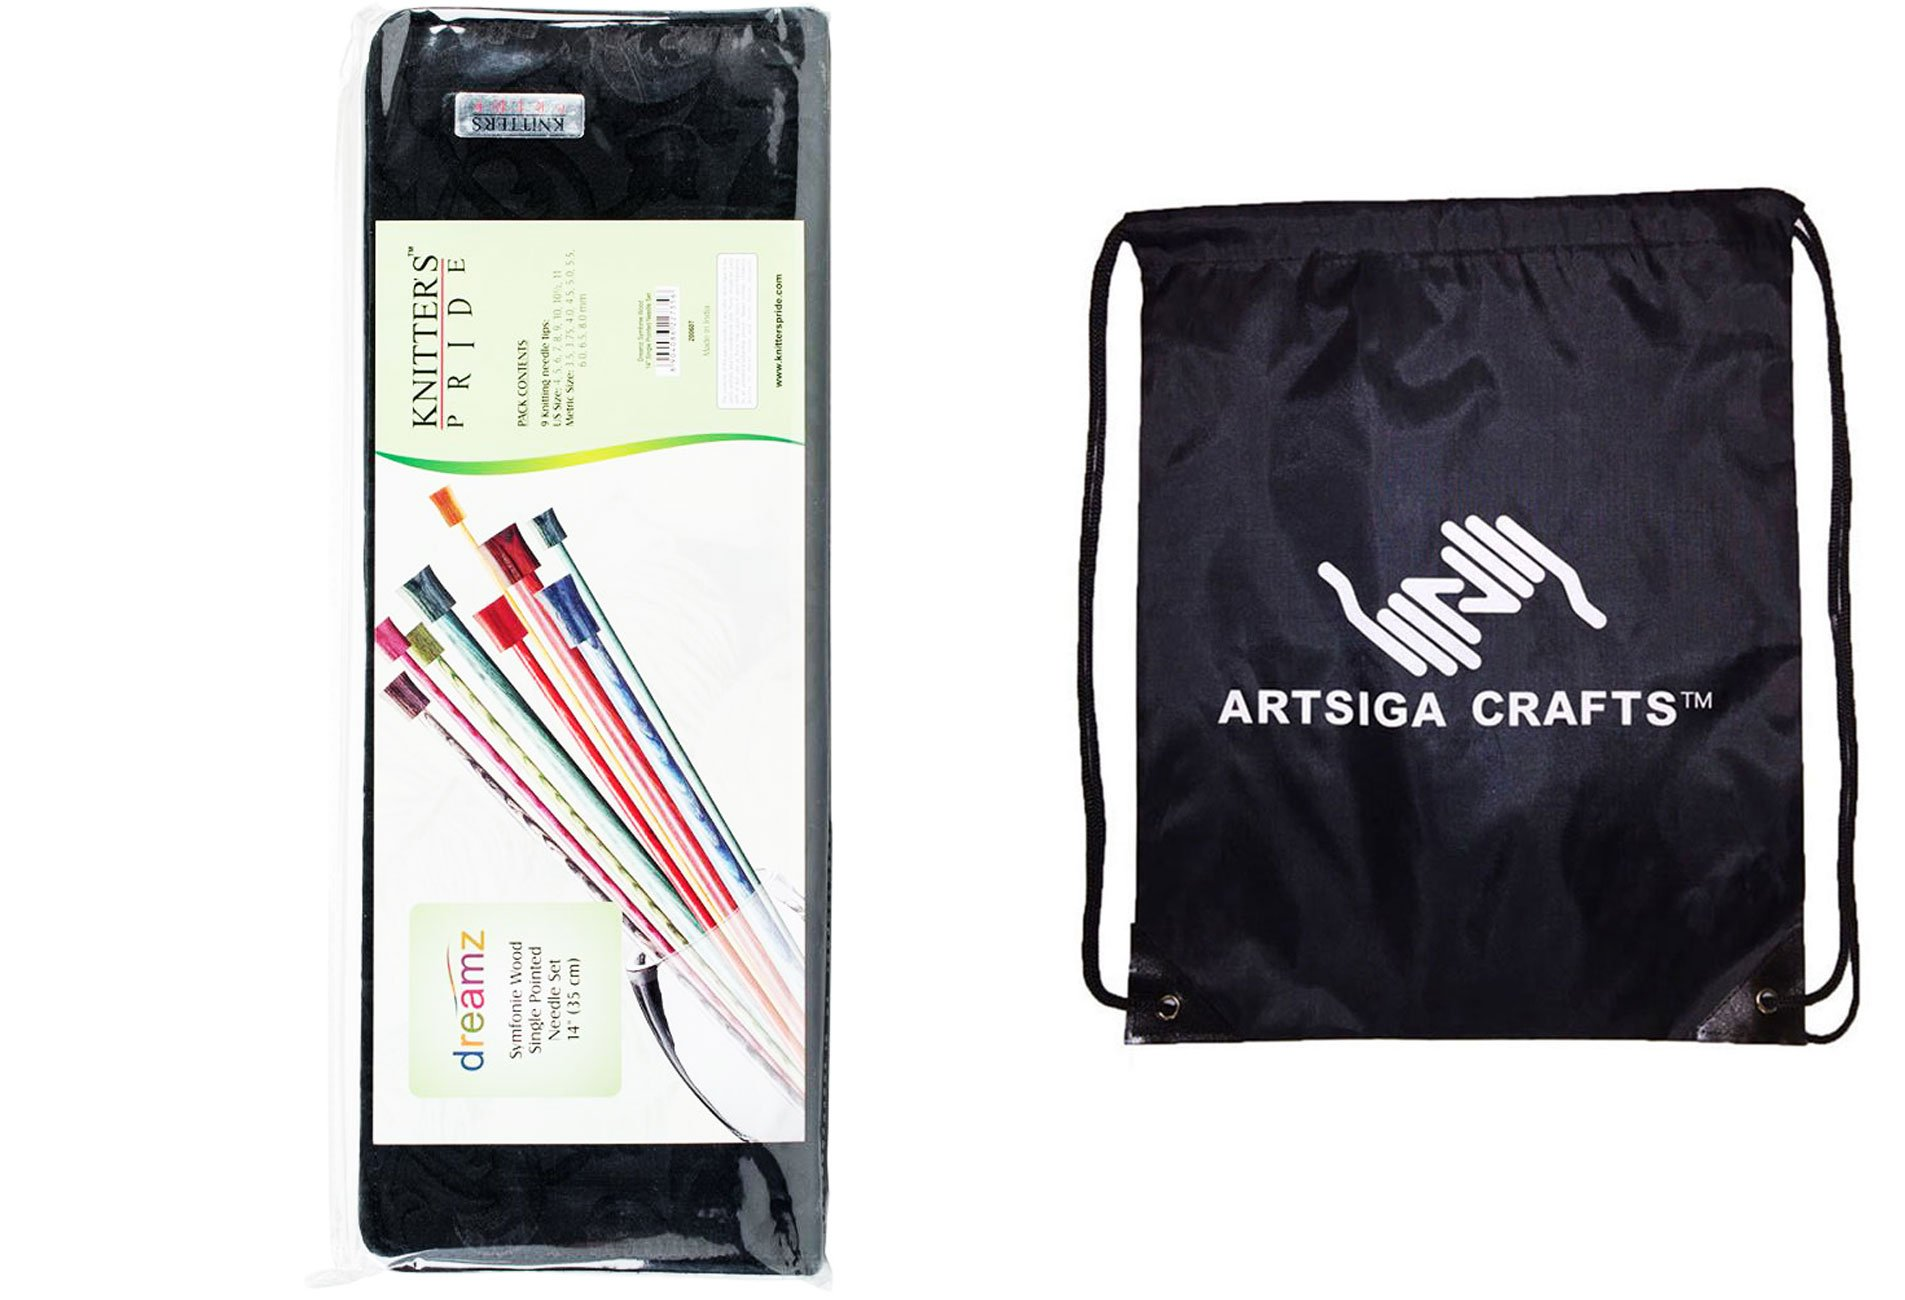 Knitter's Pride Knitting Needles Dreamz Single Pointed 14 inch (35cm) Set 2 of 9 Sizes Bundle with 1 Artsiga Crafts Project Bag 200607